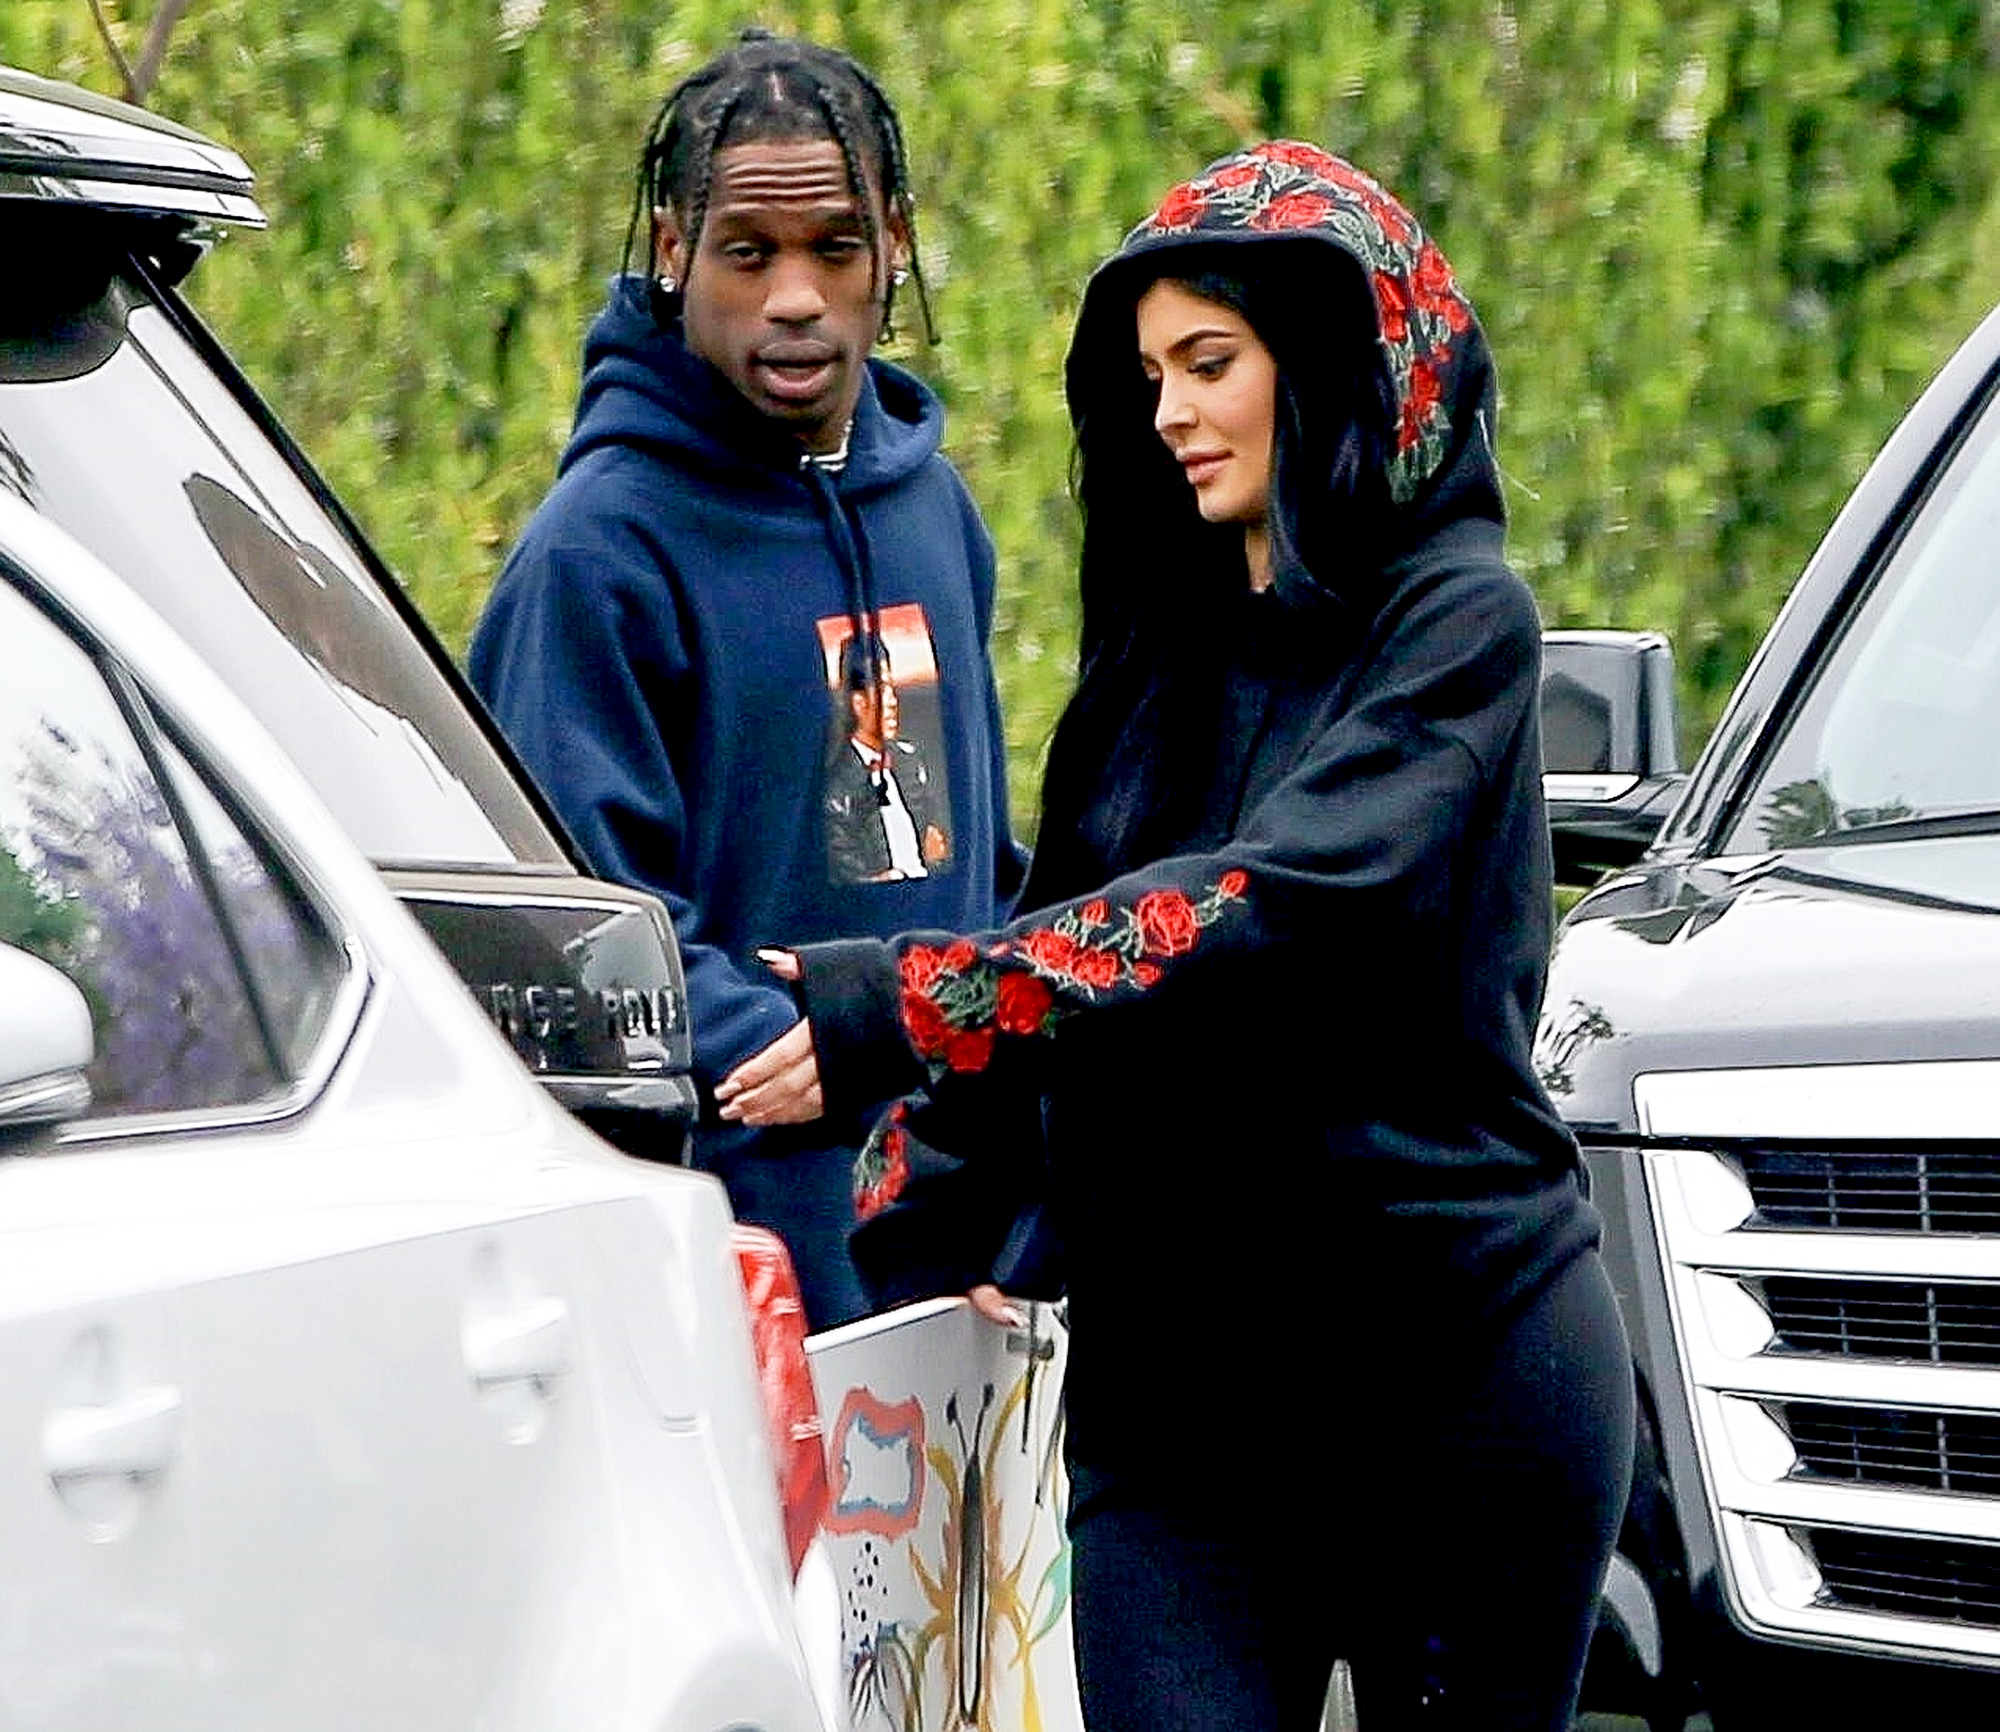 Kylie Jenner And Travis Scott Relationship: No Plans For The Future?